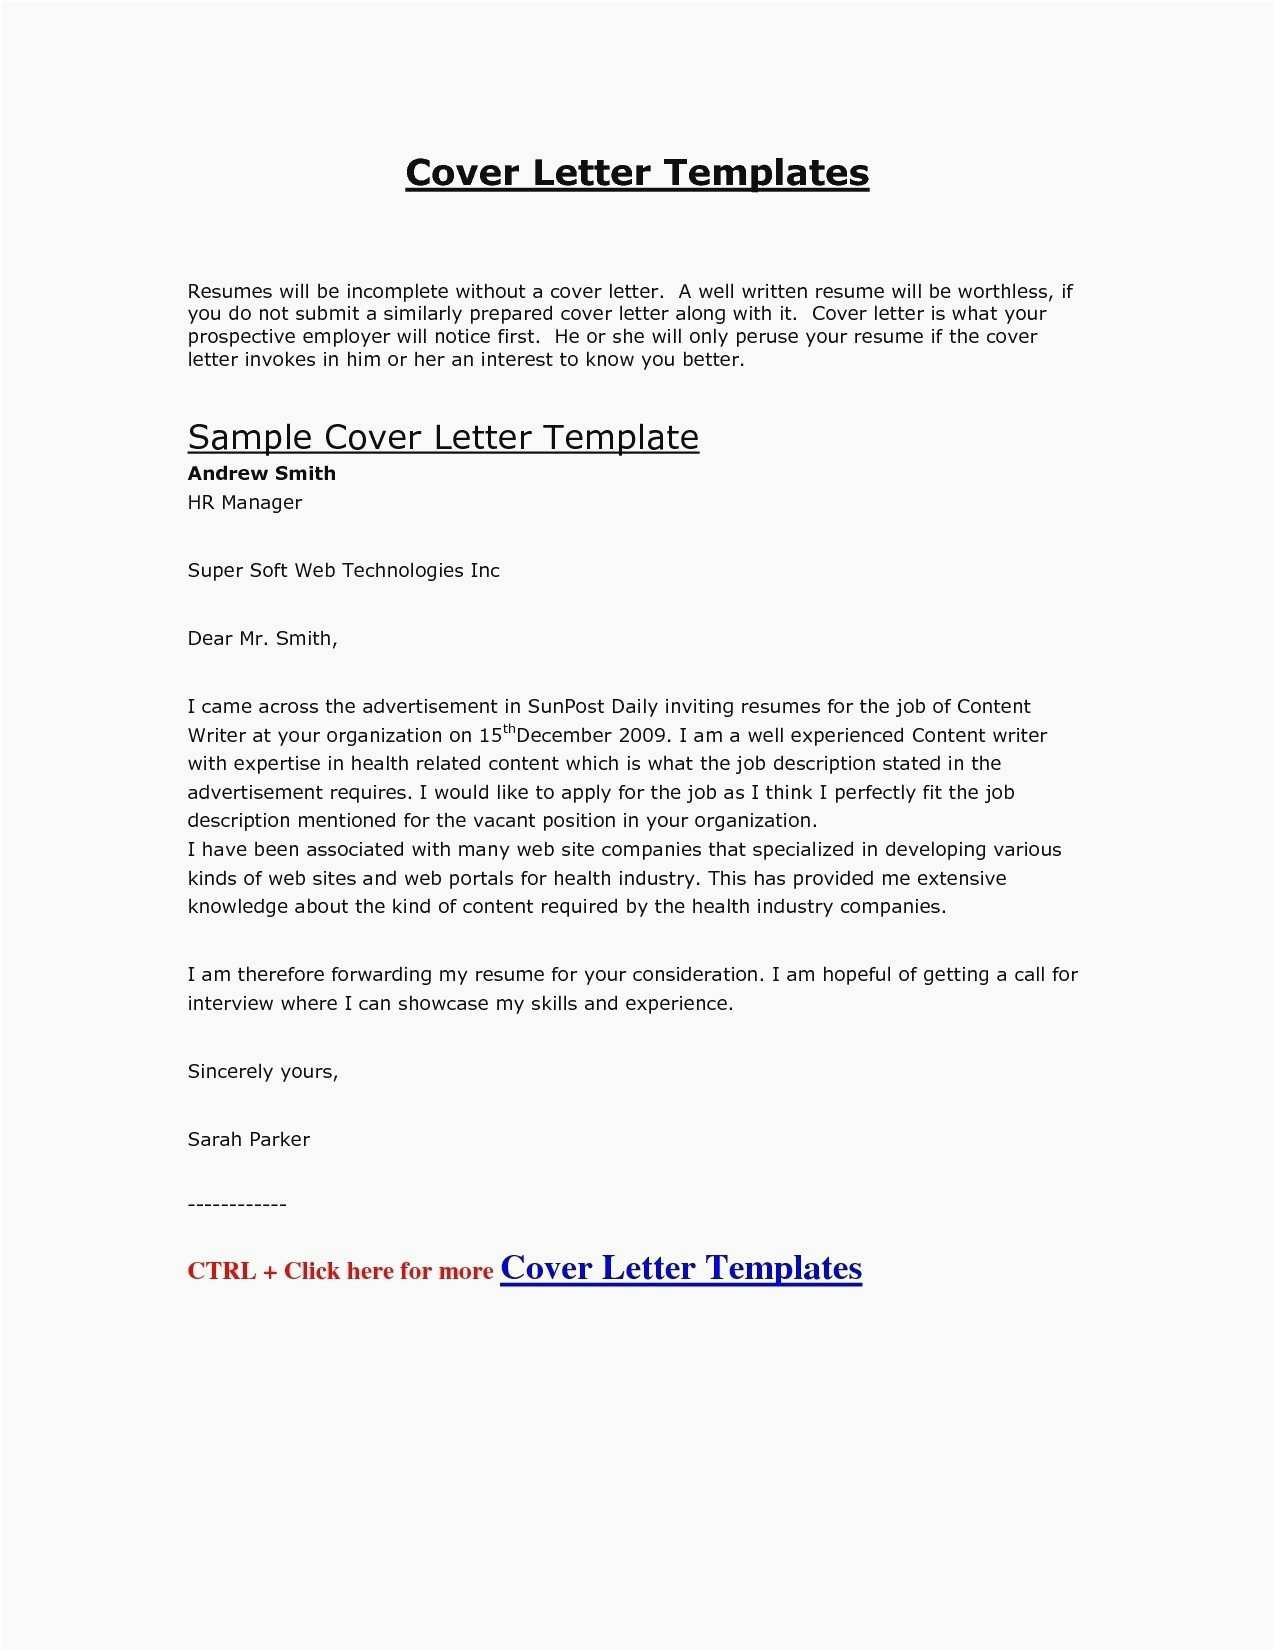 Resume for Interview - 29 Free Resume Letters format